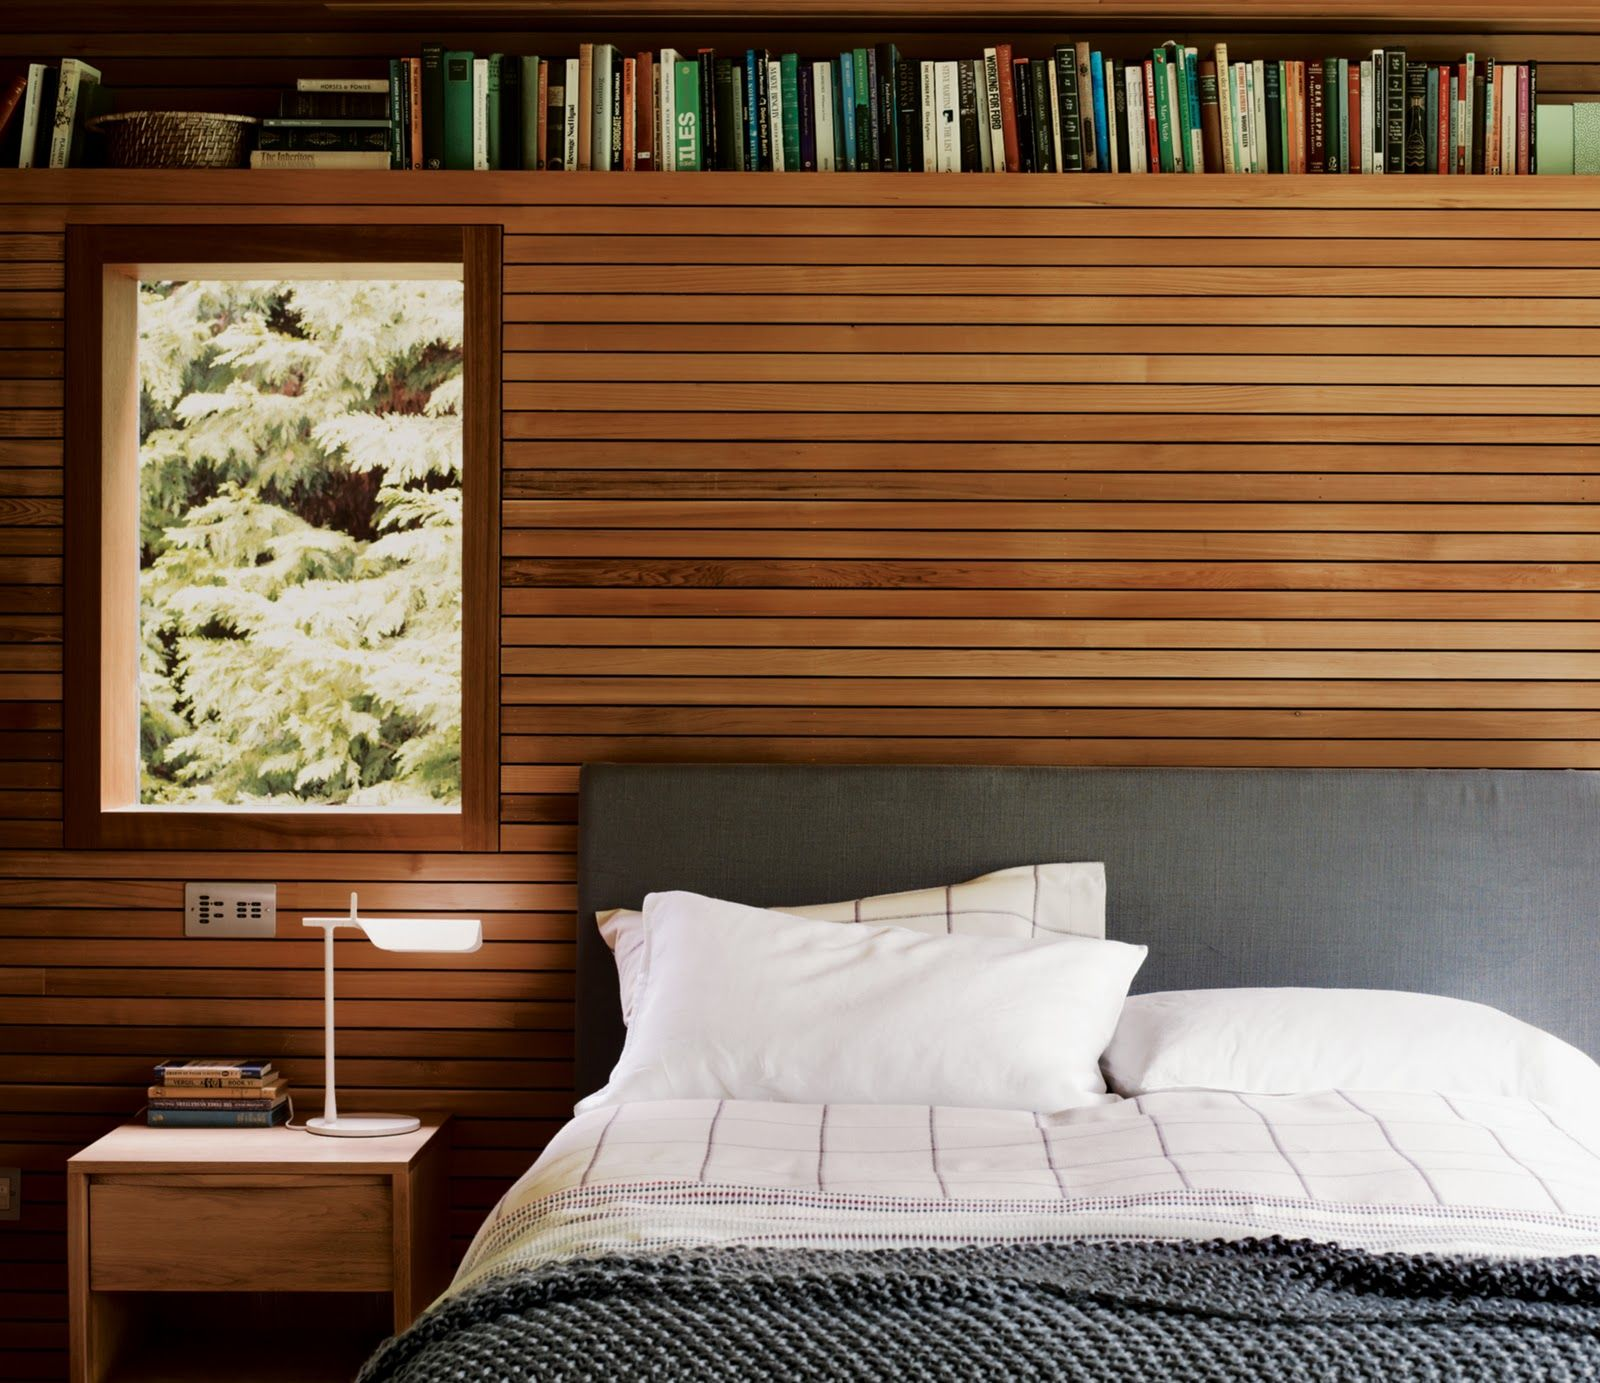 Could get a custom timber fake wall as a headboard, spaced